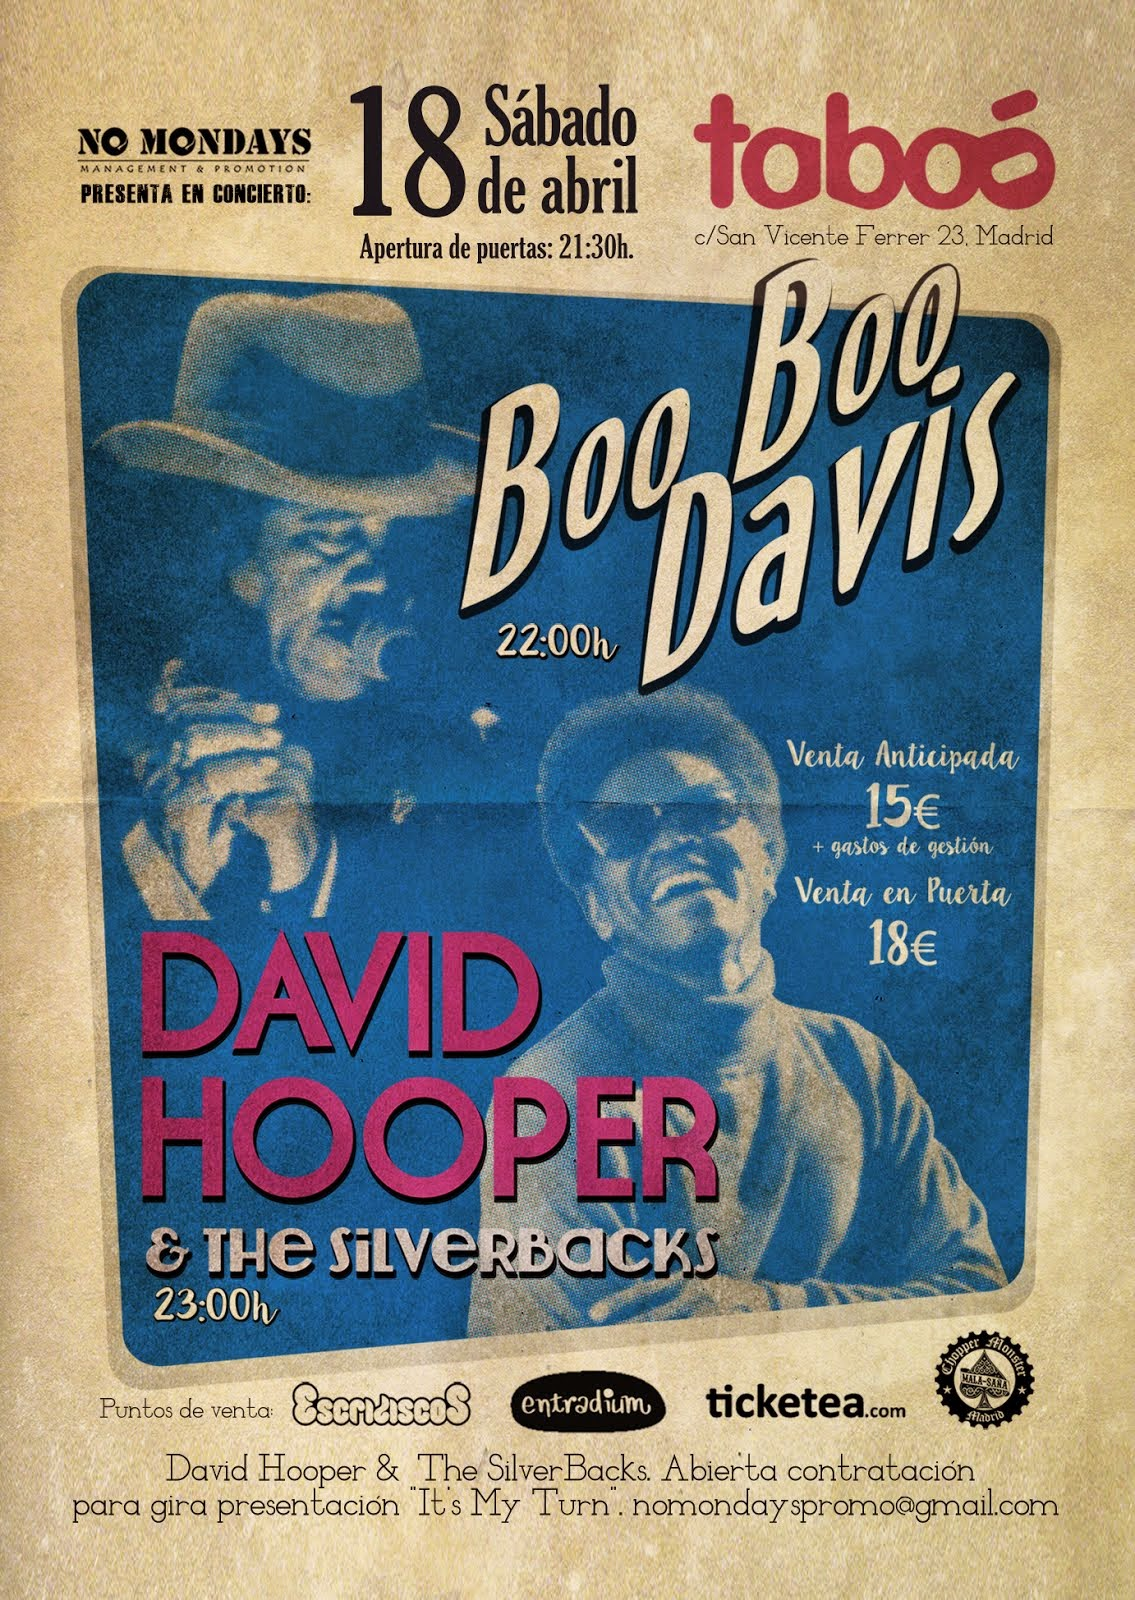 Boo Boo Davis + David Hooper & The Silverbacks (18/04/2015)